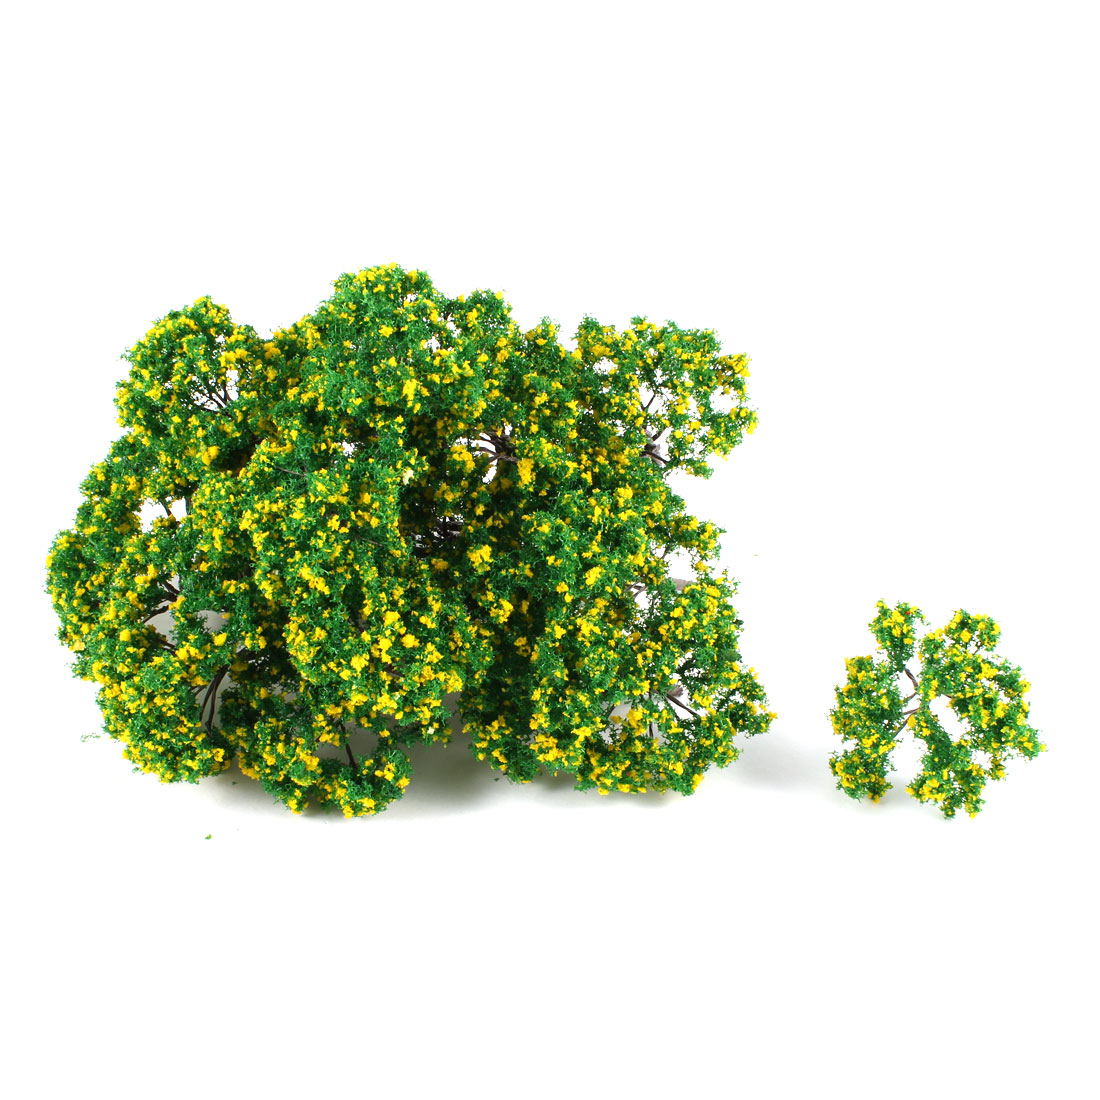 25Pcs Artificial Plastic Green Leaf Yellow Flower Tree 7cm High 1:100